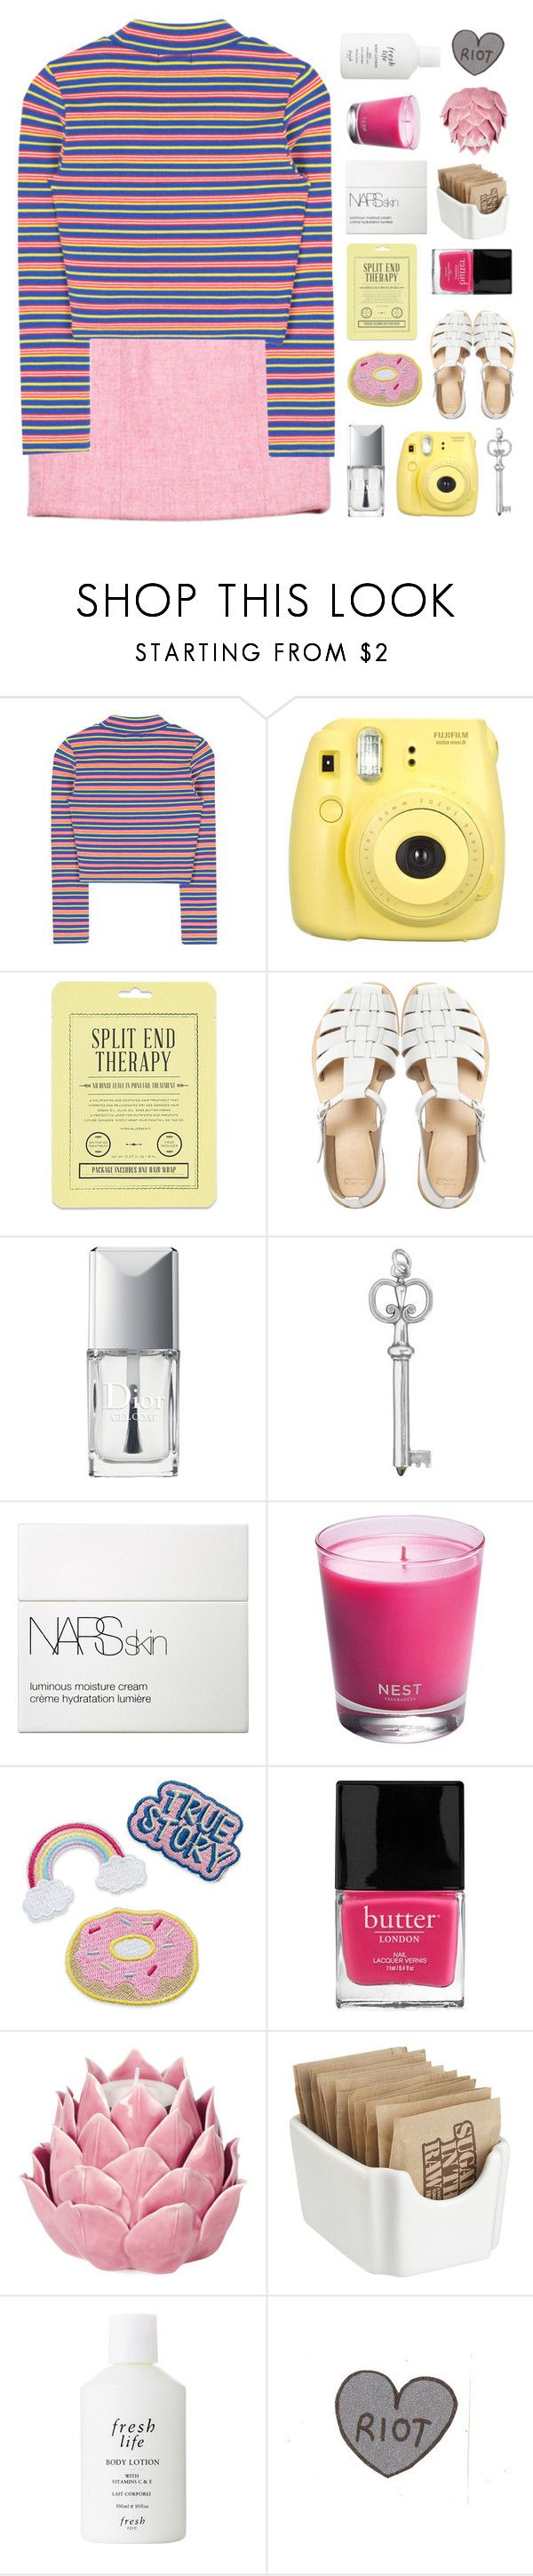 """""""candy"""" by seoul-searching ❤ liked on Polyvore featuring Fujifilm, Love 21, ASOS, Christian Dior, NARS Cosmetics, Nest, Butter London, Zara Home, Crate and Barrel and Fresh"""